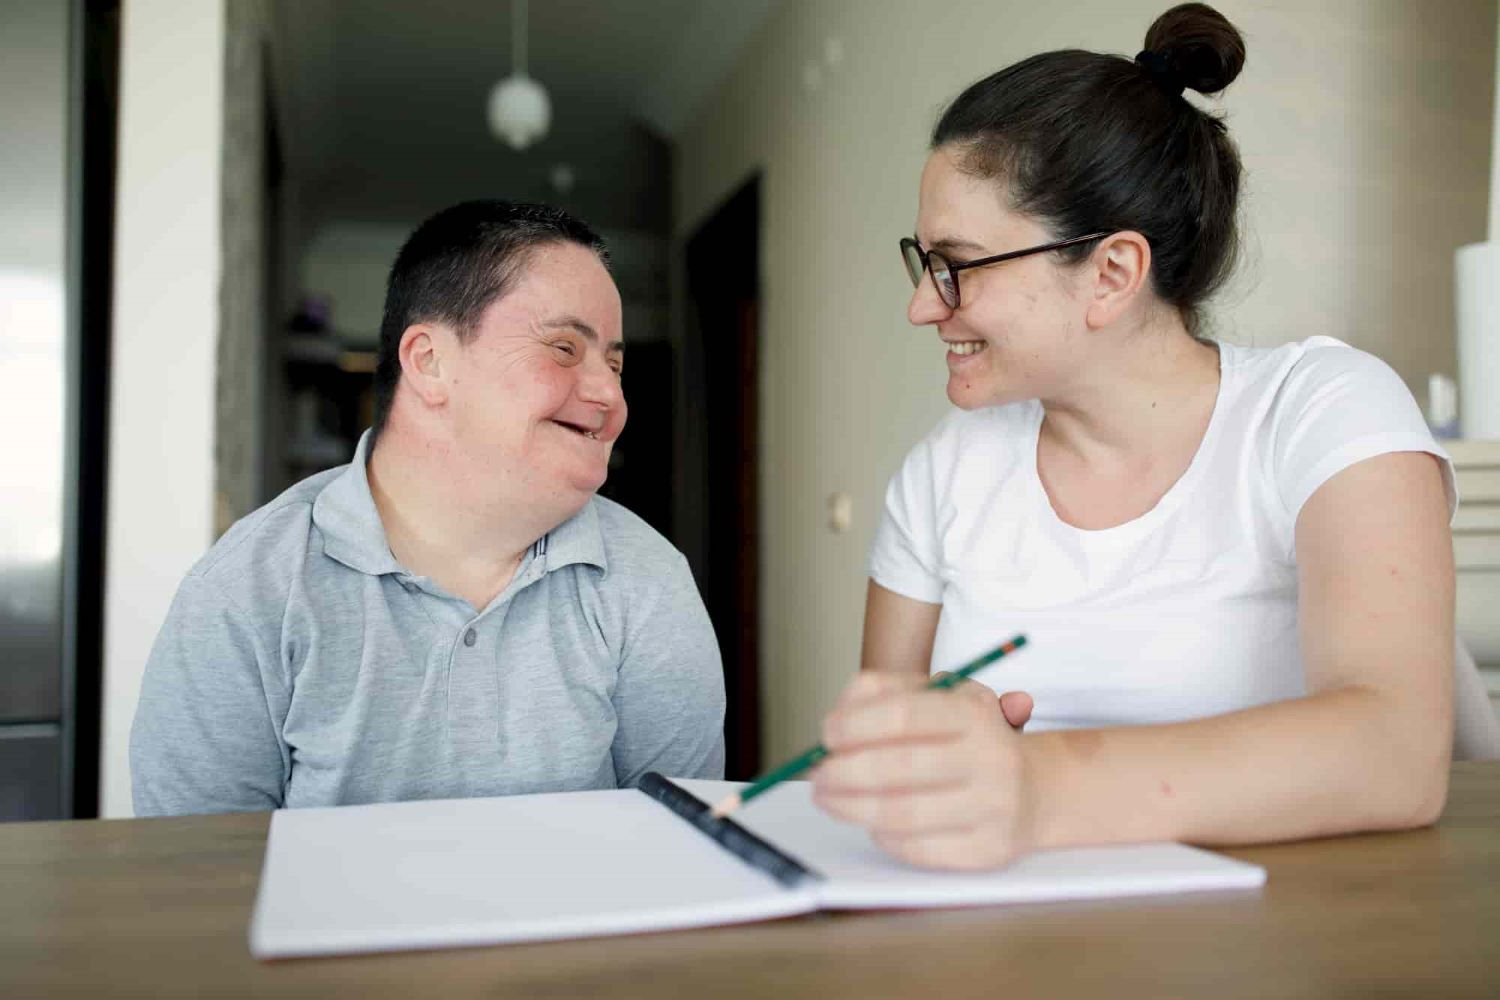 A person with a disability and a lady having a discussion